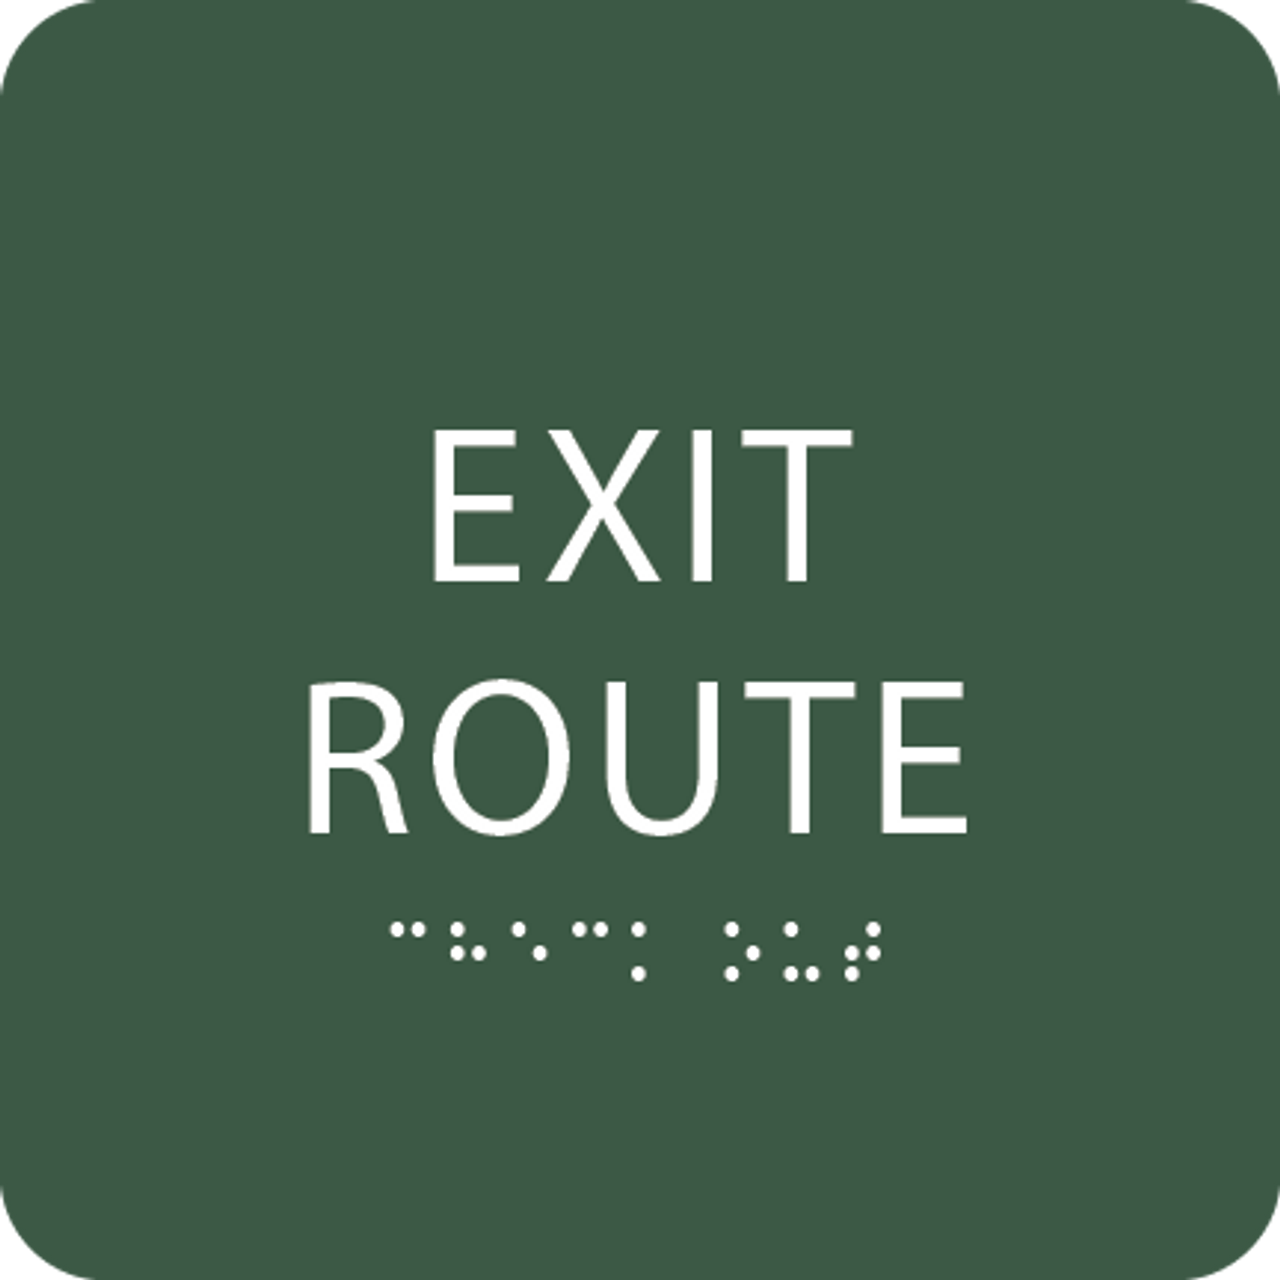 Spruce Tactile Exit Route Sign